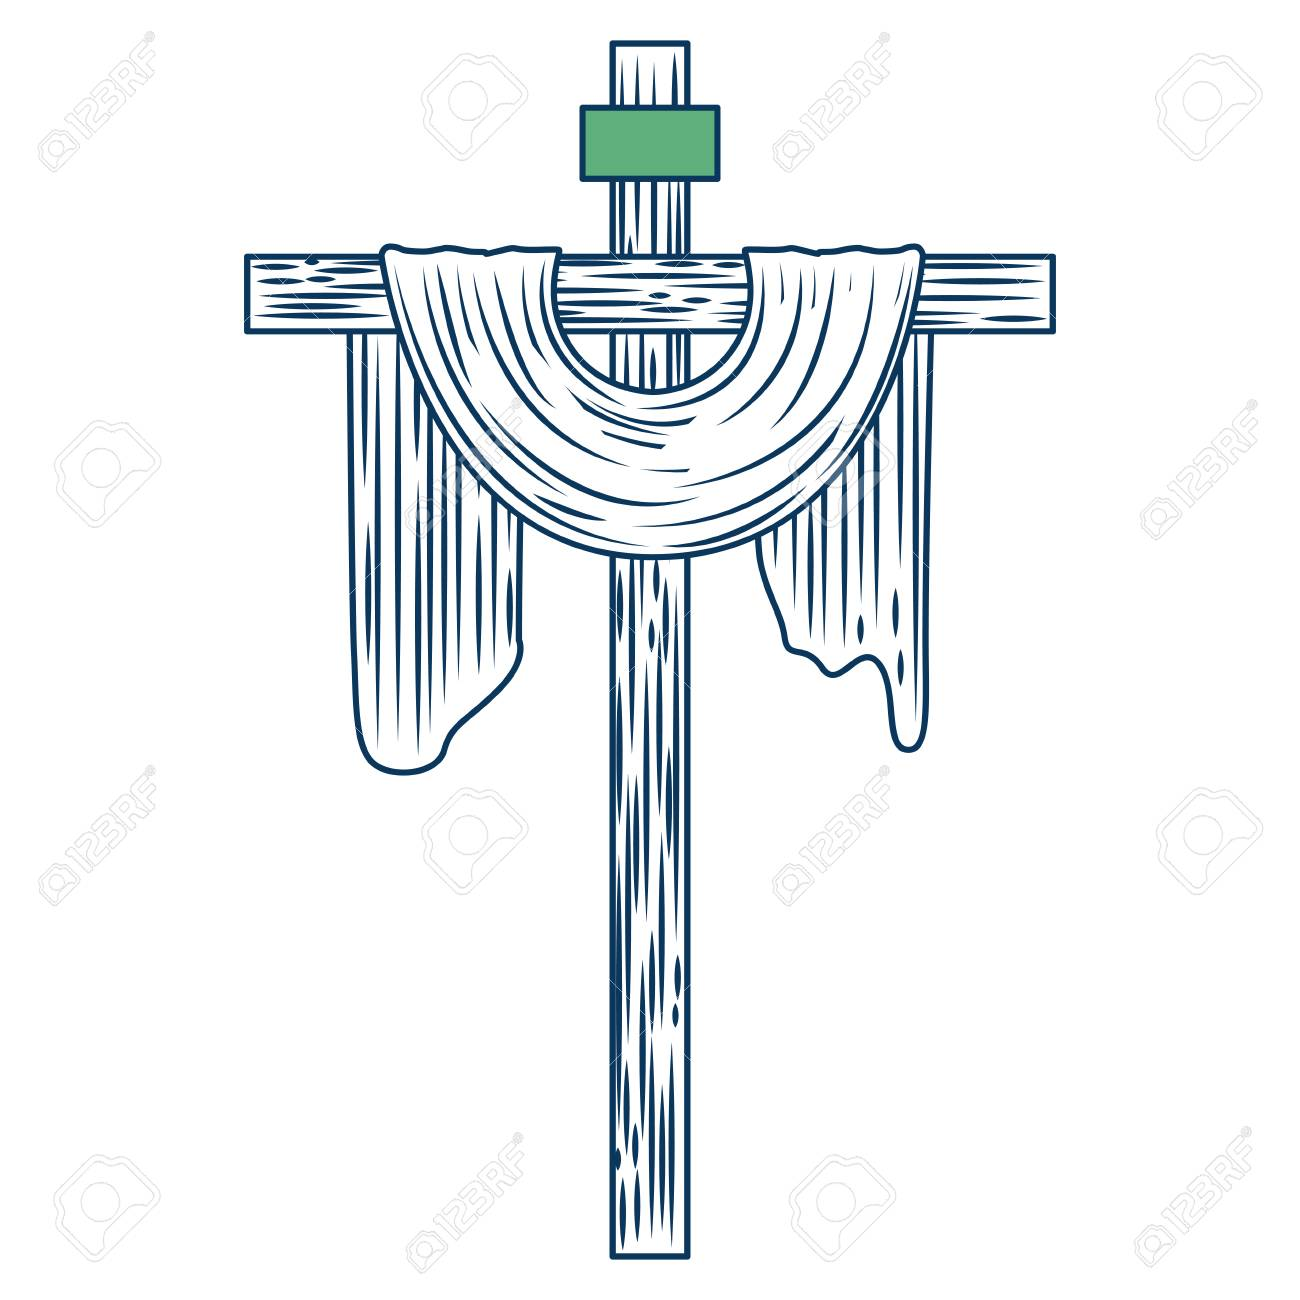 sacred cross christianity symbol icon vector illustration green and blue - 98874136